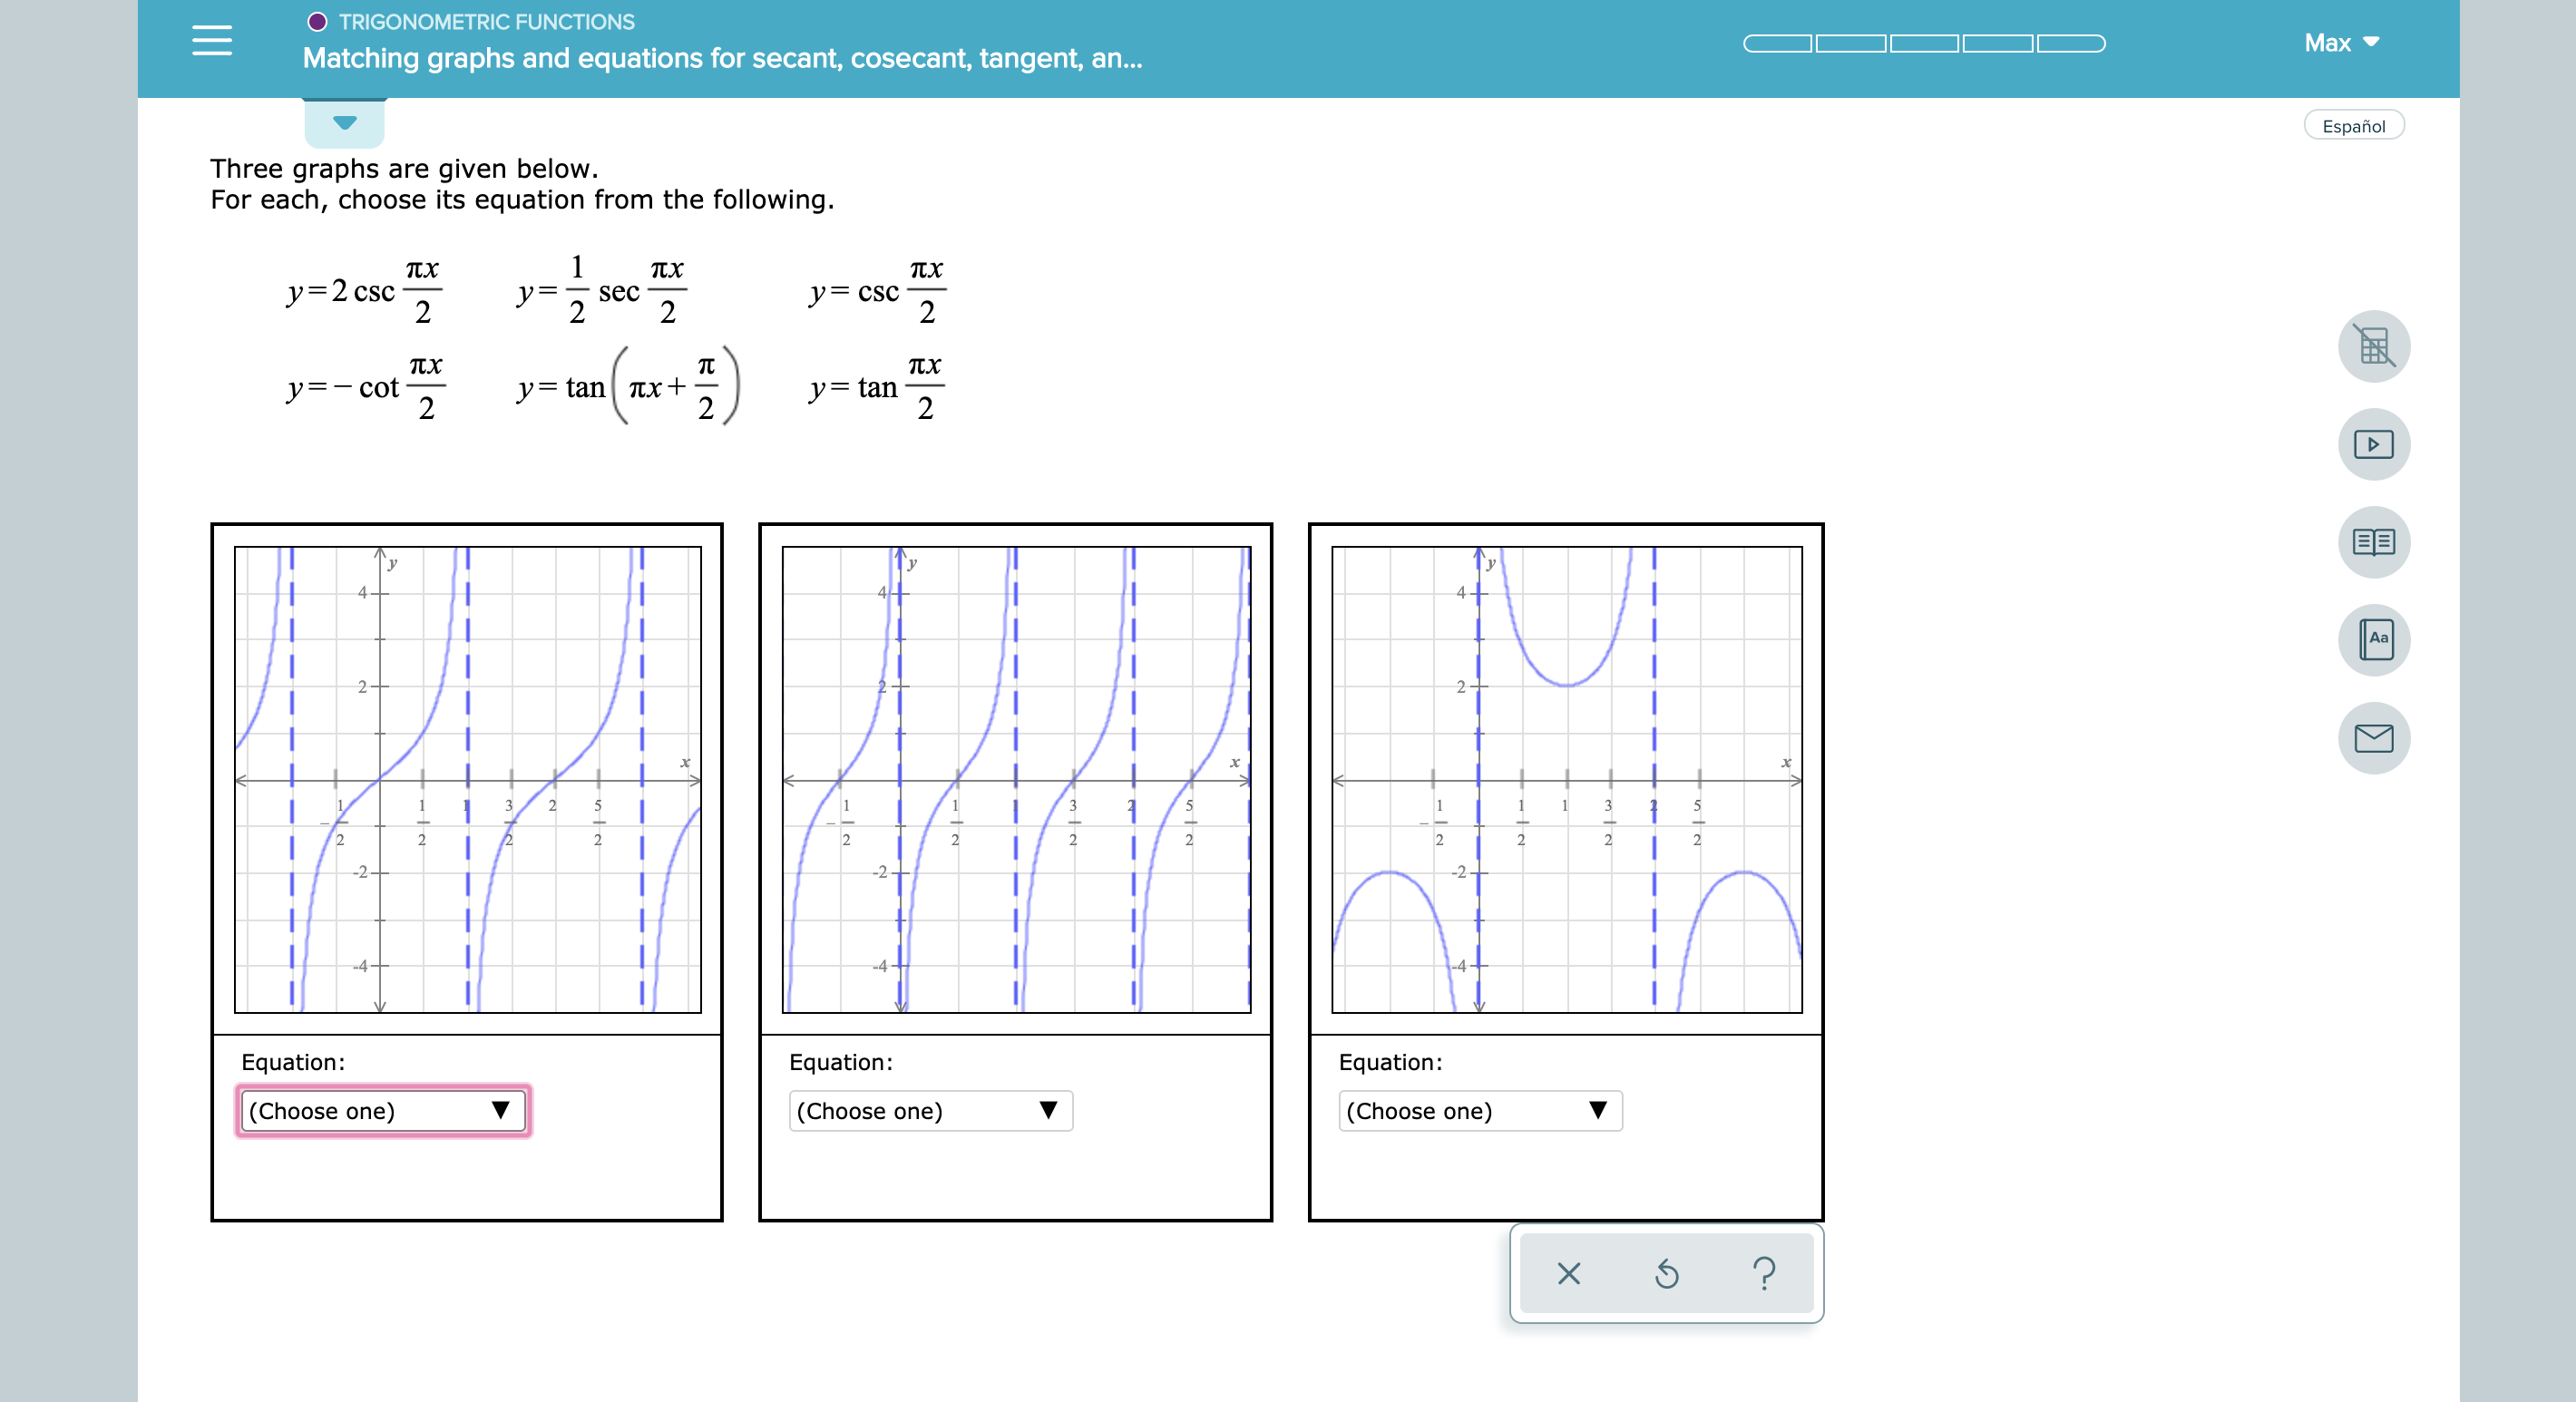 TRIGONOMETRIC FUNCTIONS Max Matching graphs and equations for secant, cosecant, tangent, an... Español Three graphs are given below. For each, choose its equation from the following. 1 TX sec 2 TX TX y 2 csc 2 yCSC 2 2 TC ytan 7x+ 2 y cot 2 y=tan 2 EE Aa 2- 2- 2 3 5 1 3 2 2 2 2 2 2 2 2 2 2 2 2 -2- 2 -2 -4- -4 Equation: Equation: Equation: (Choose one) (Choose one) (Choose one) ?